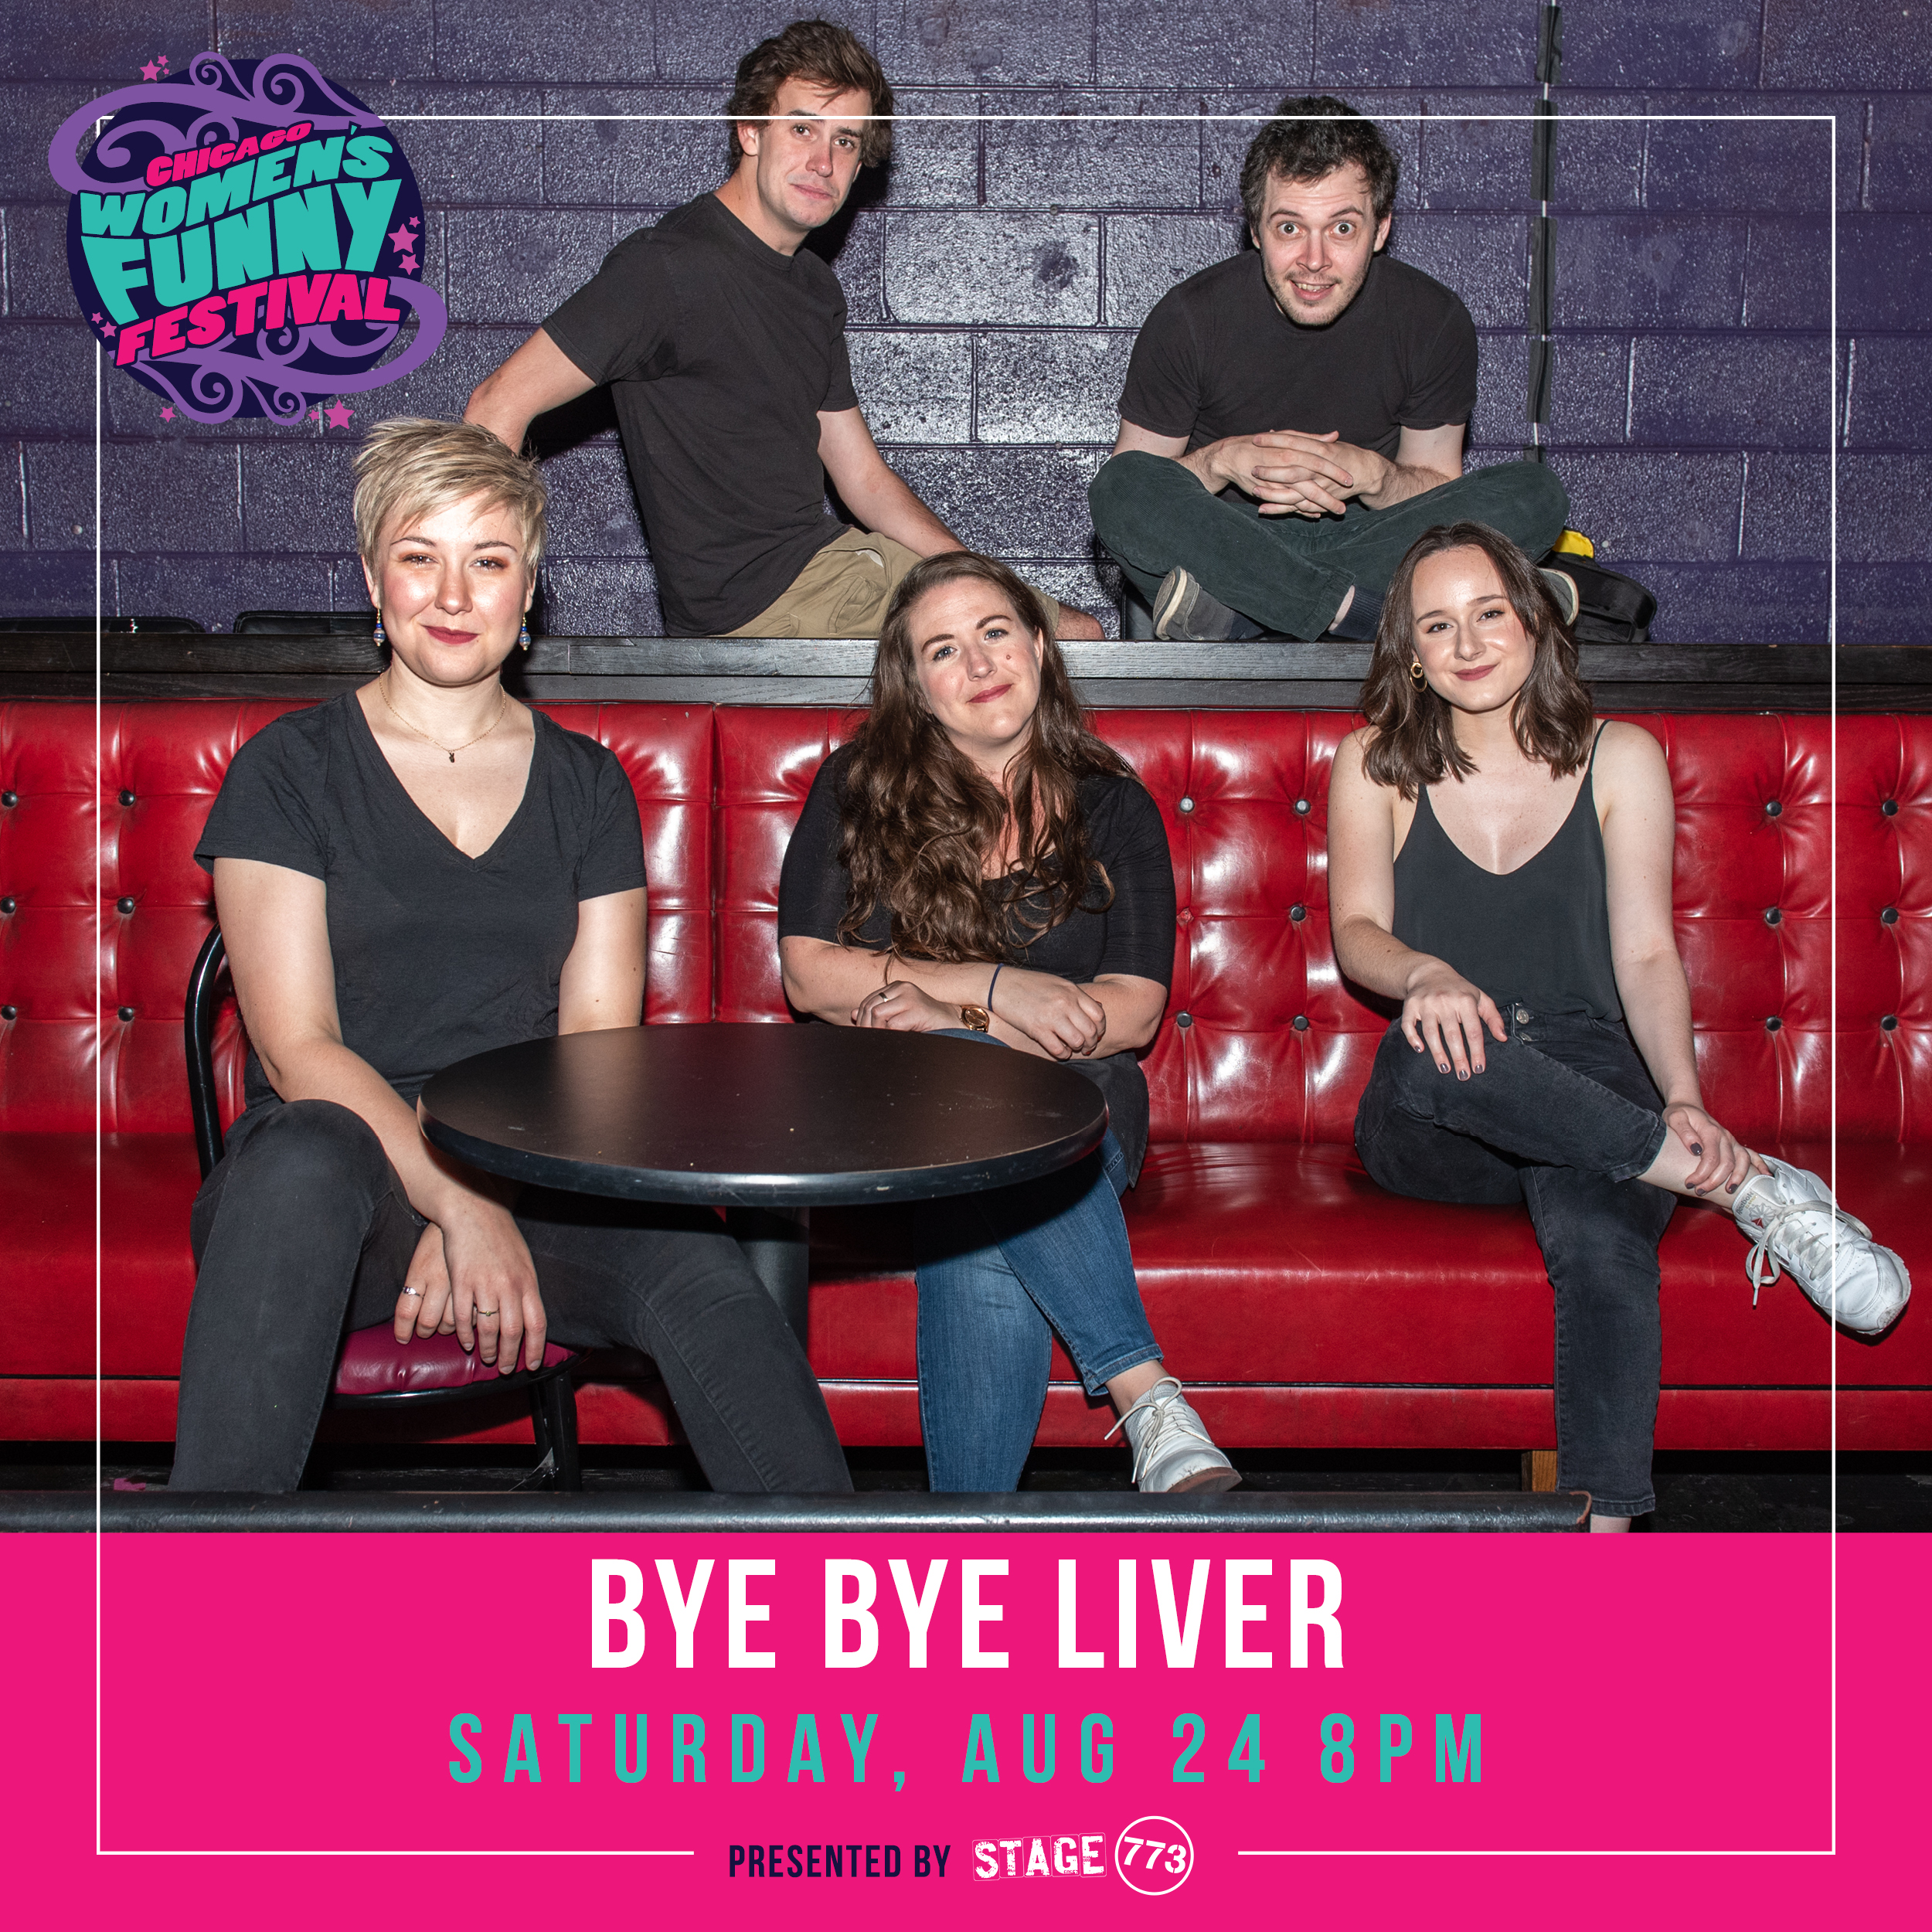 ByeByeLiver_Saturday_8PM_CWFF20196.jpg